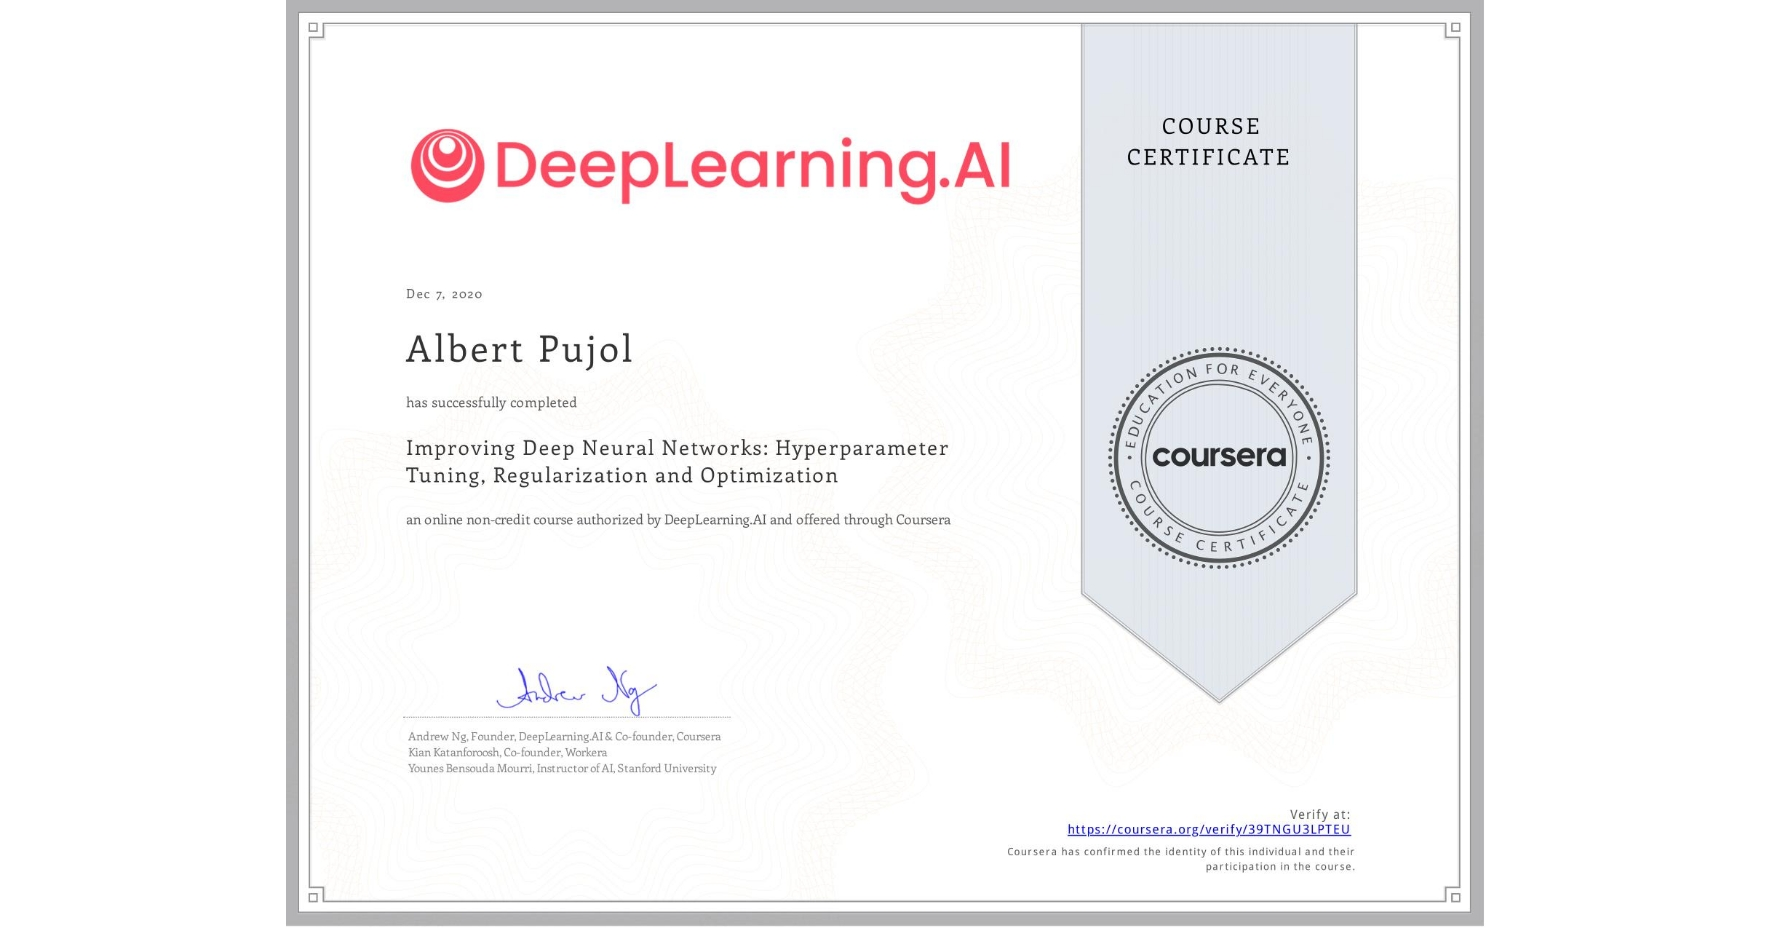 View certificate for Albert Pujol, Improving Deep Neural Networks: Hyperparameter Tuning, Regularization and Optimization, an online non-credit course authorized by DeepLearning.AI and offered through Coursera